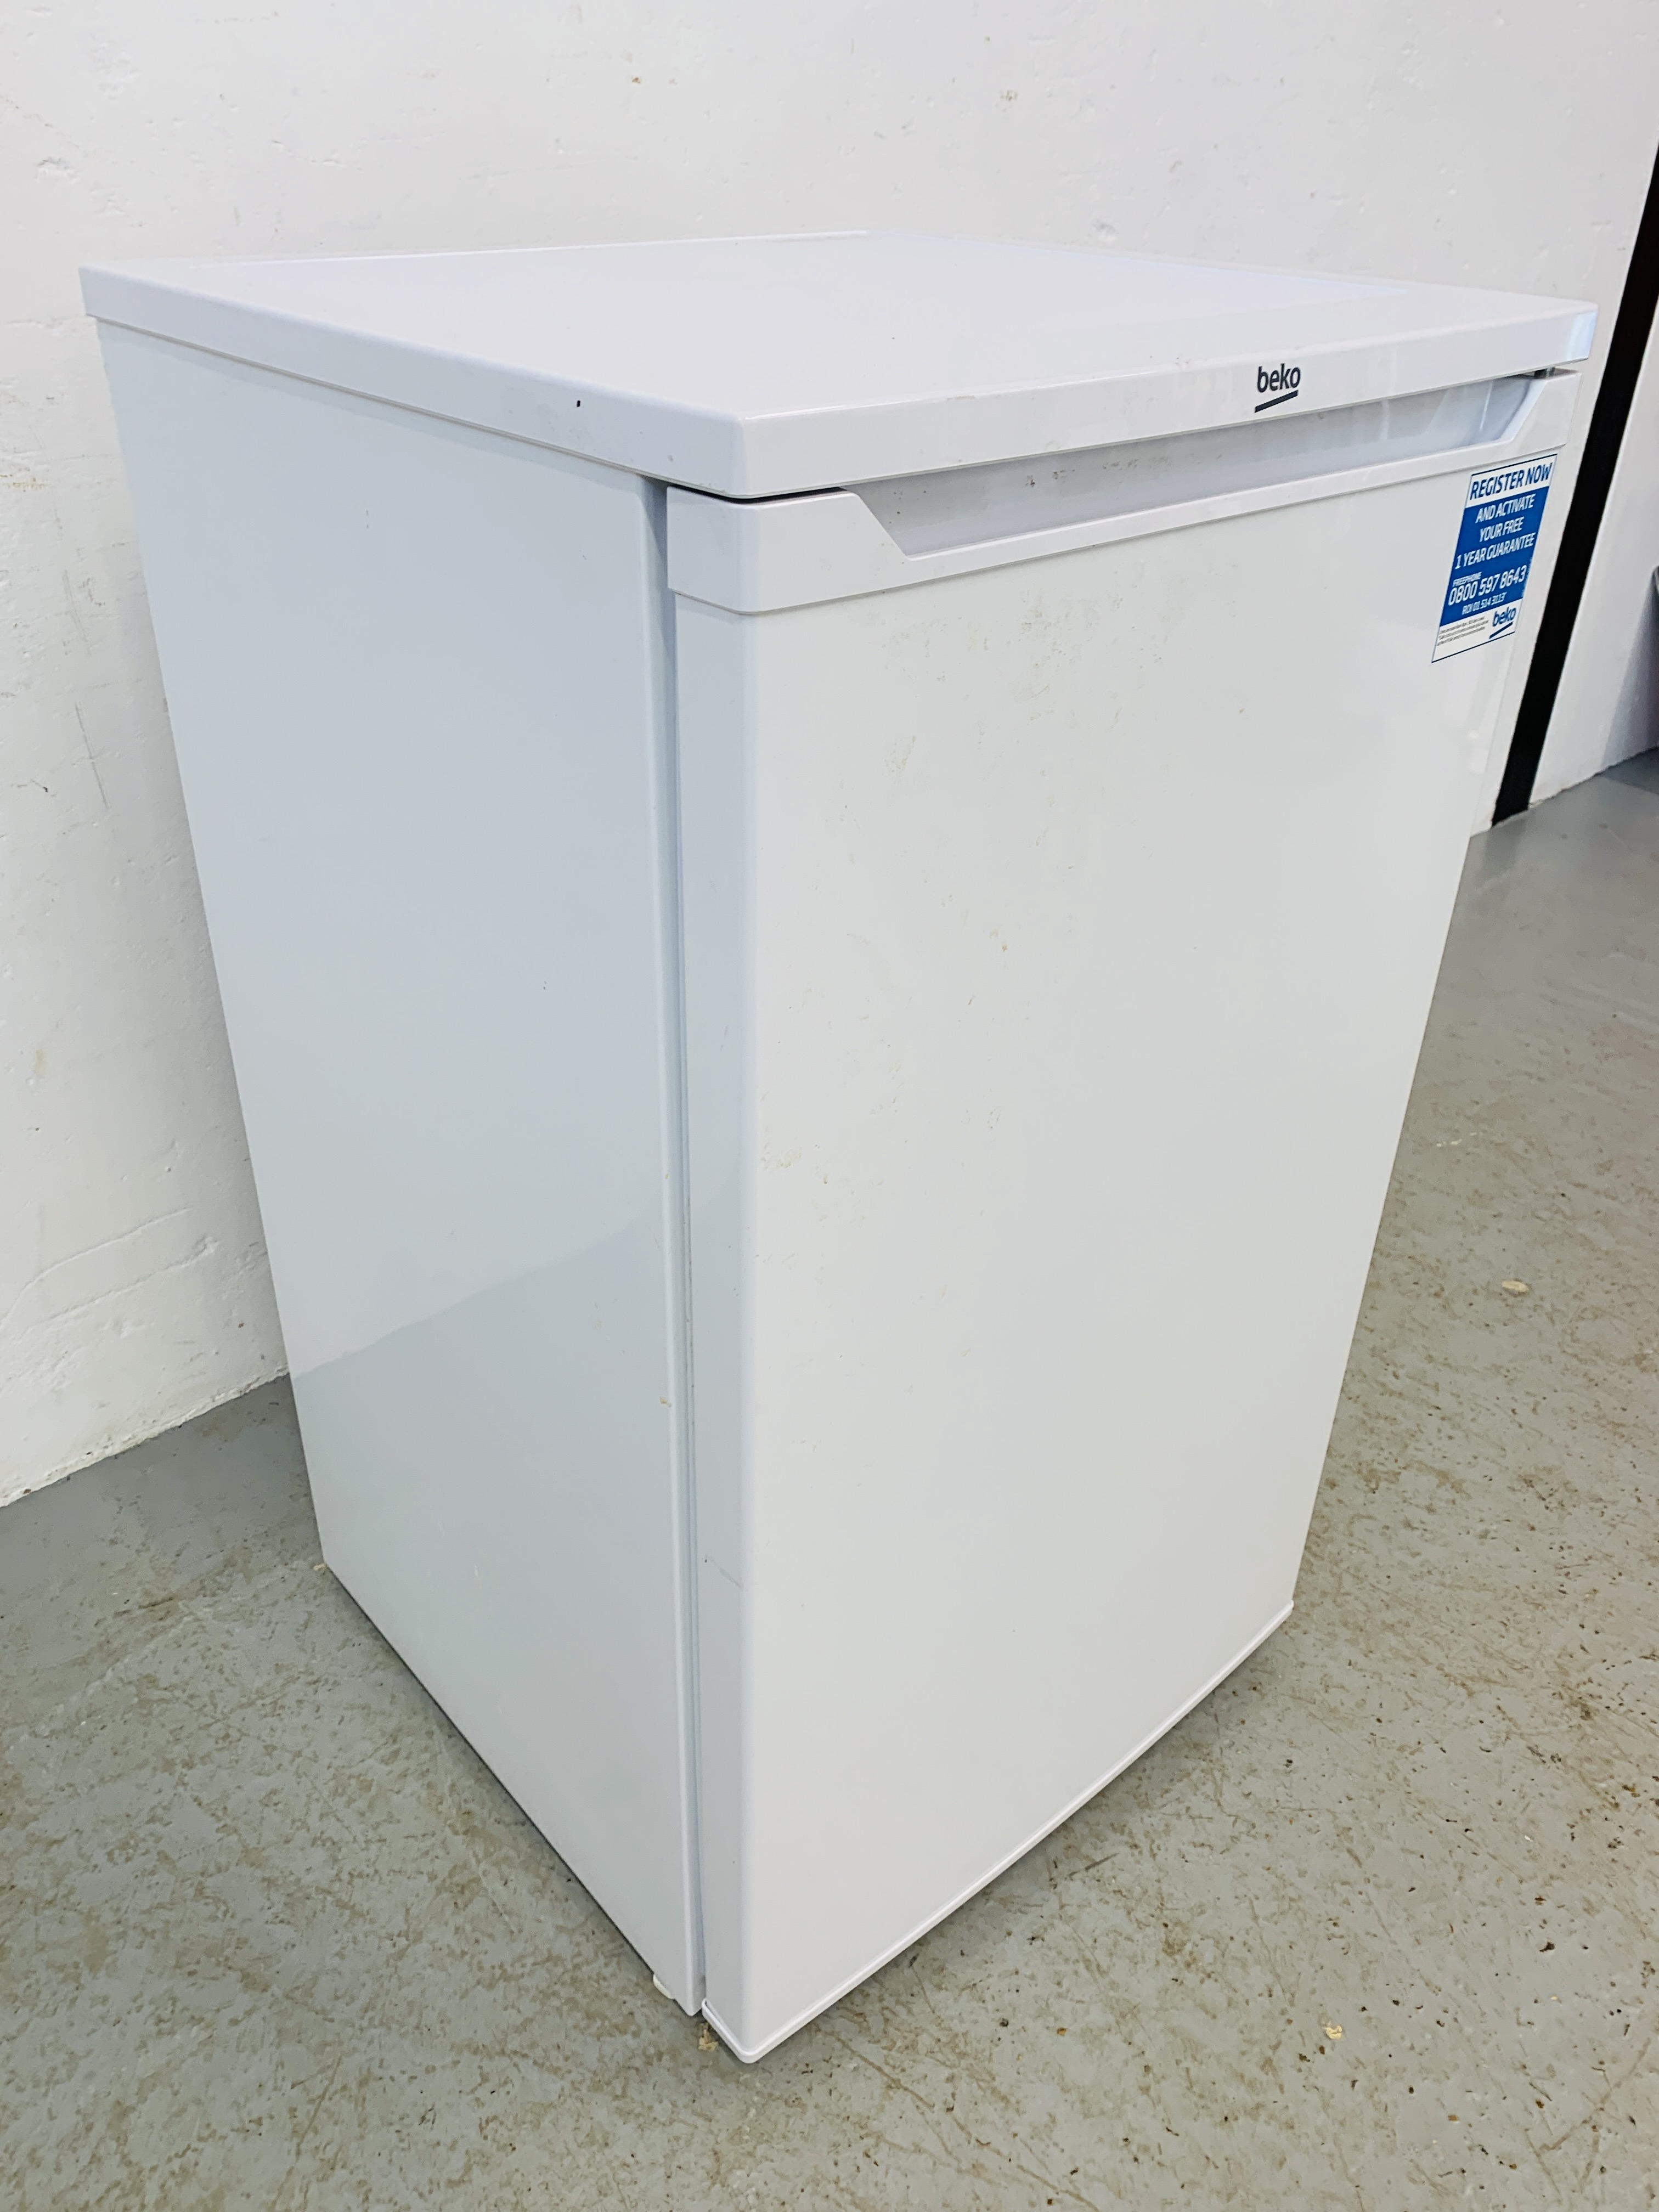 A BEKO UNDERCOUNTER FREEZER - SOLD AS SEEN - Image 5 of 6